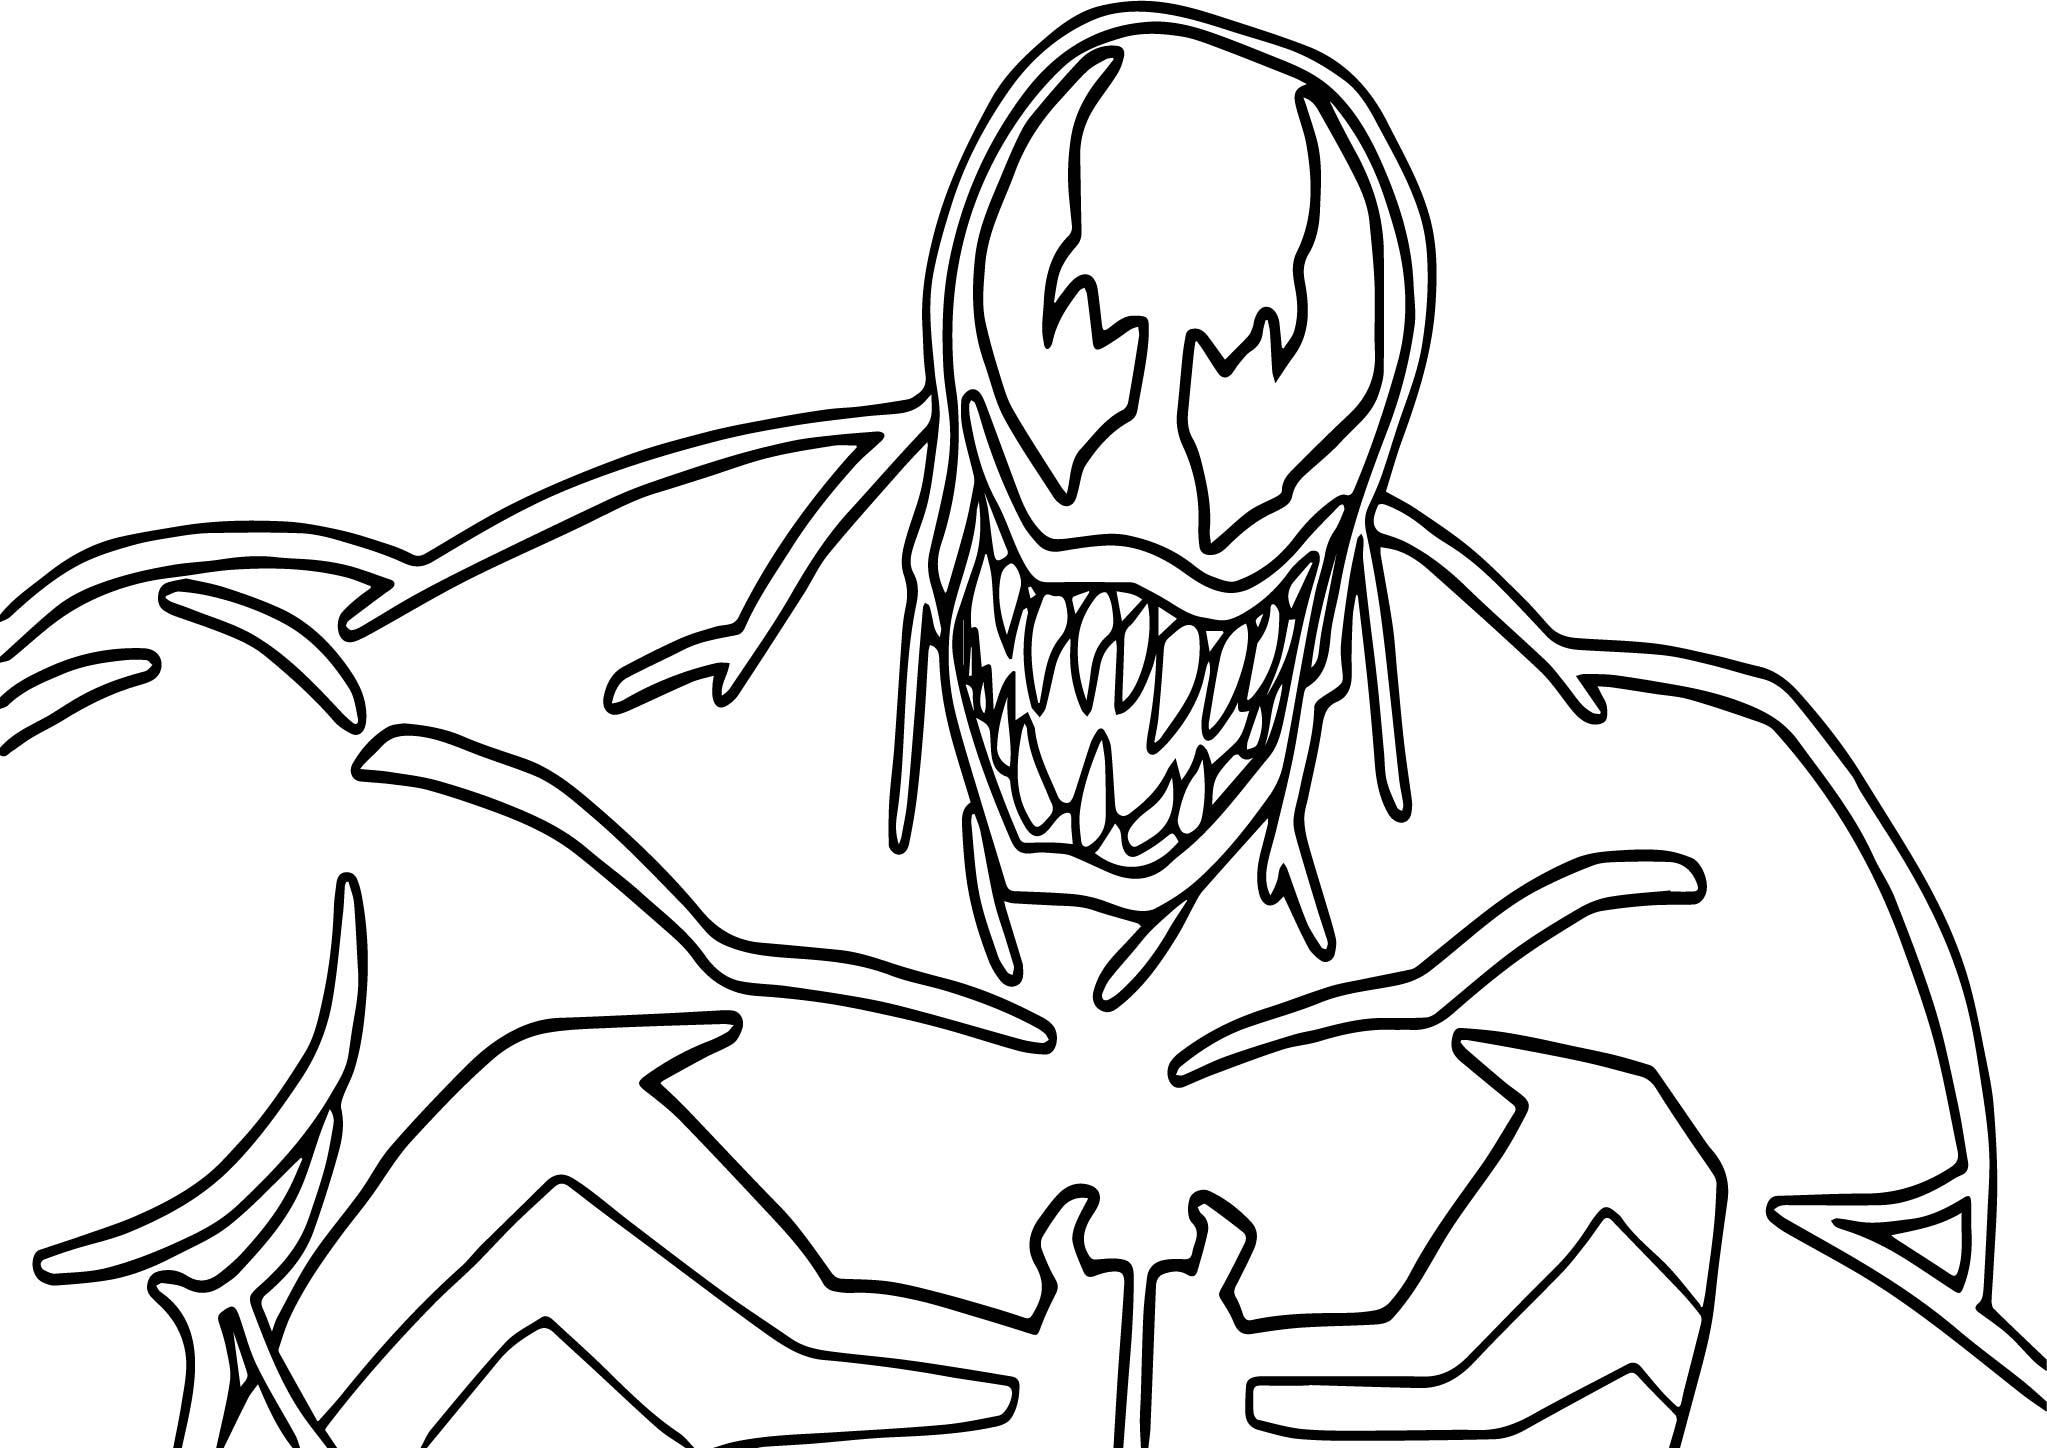 Venom Face Drawing At Getdrawings